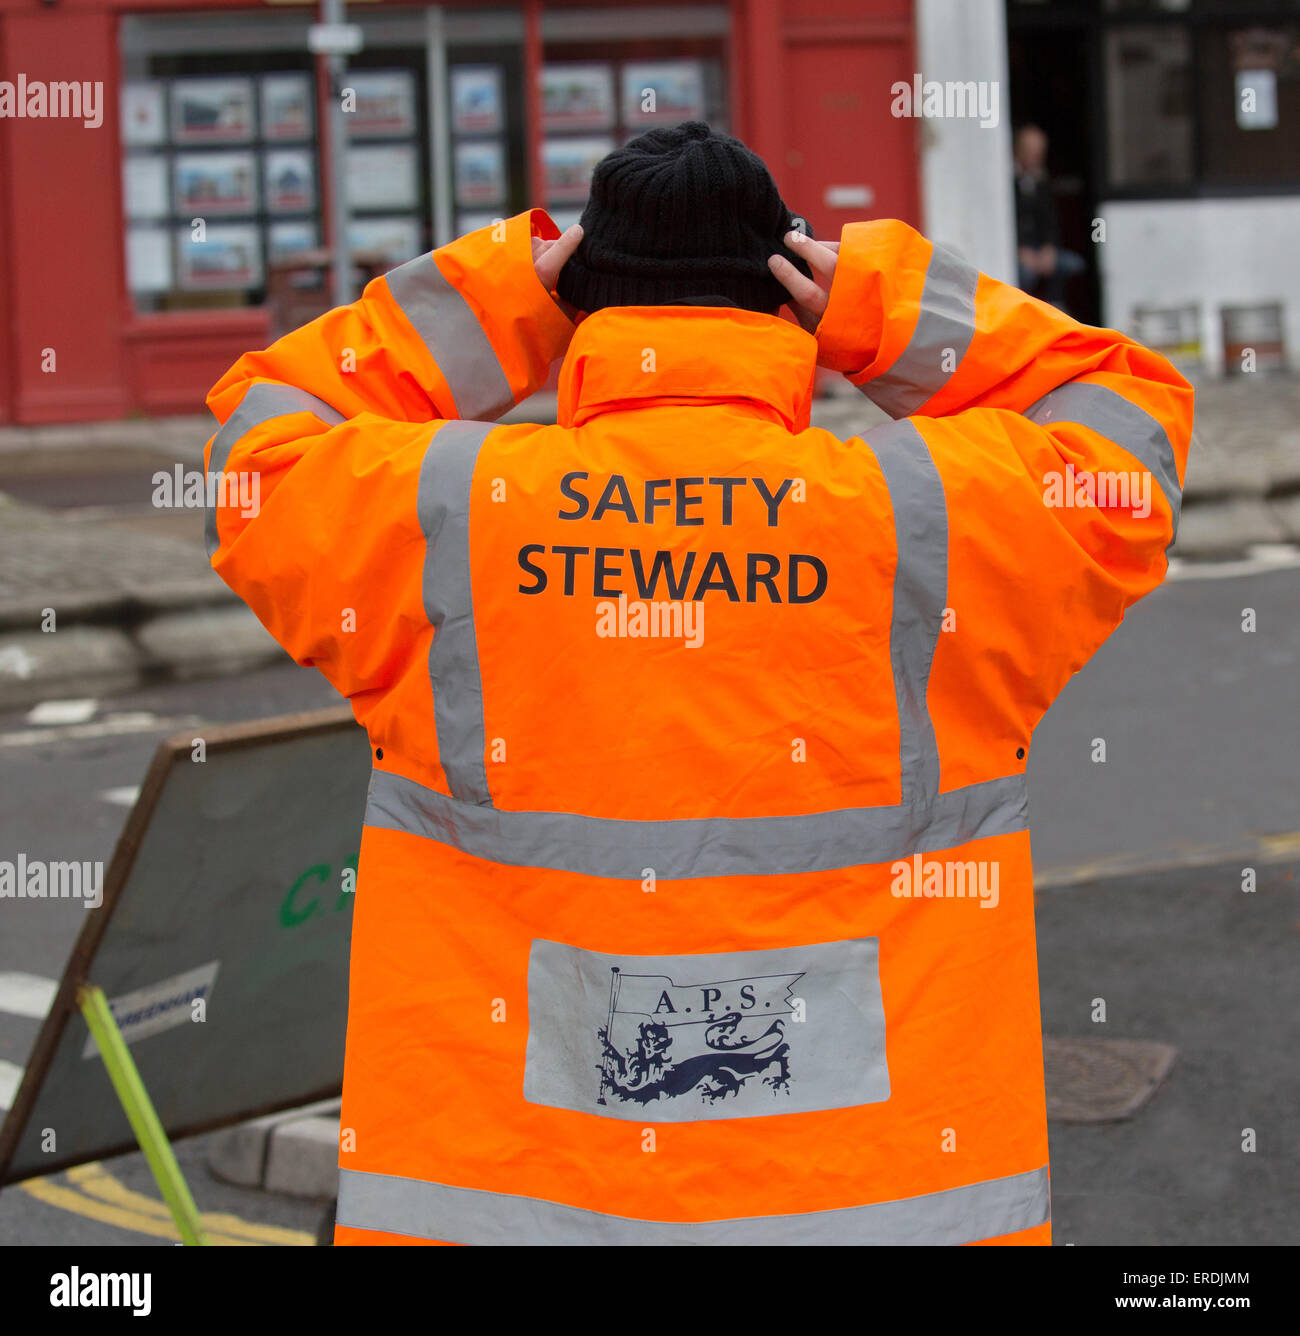 Safety steward at a 10 kilometer running event wearing an orange high vis jacket - Stock Image